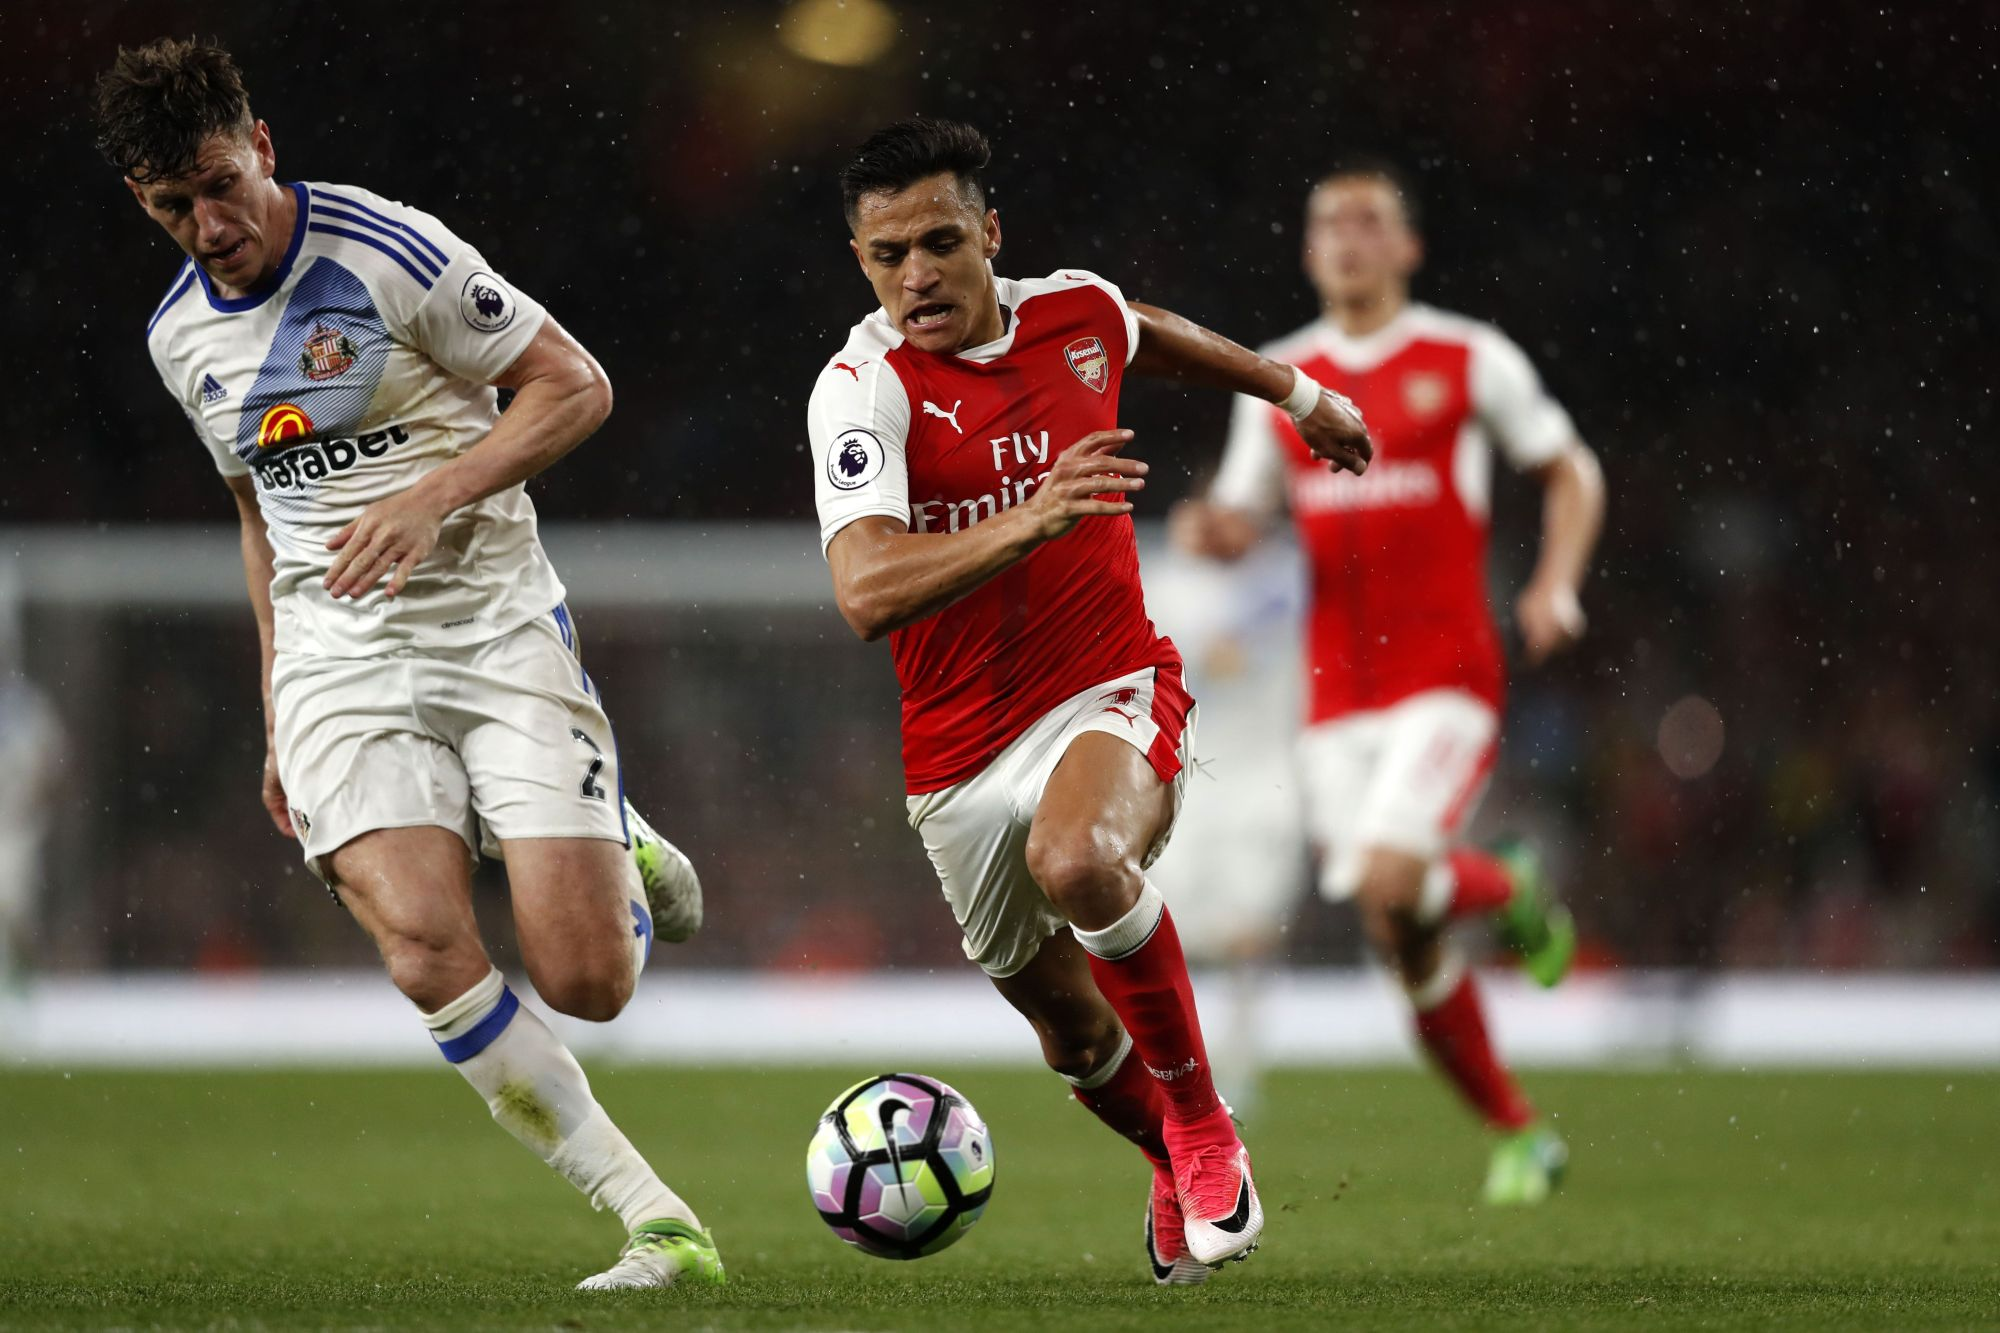 Arsenal's Alexis Sanchez (right) takes on Sunderland's Billy Jones during their Premier League match in London on Tuesday.   AFP-JIJI